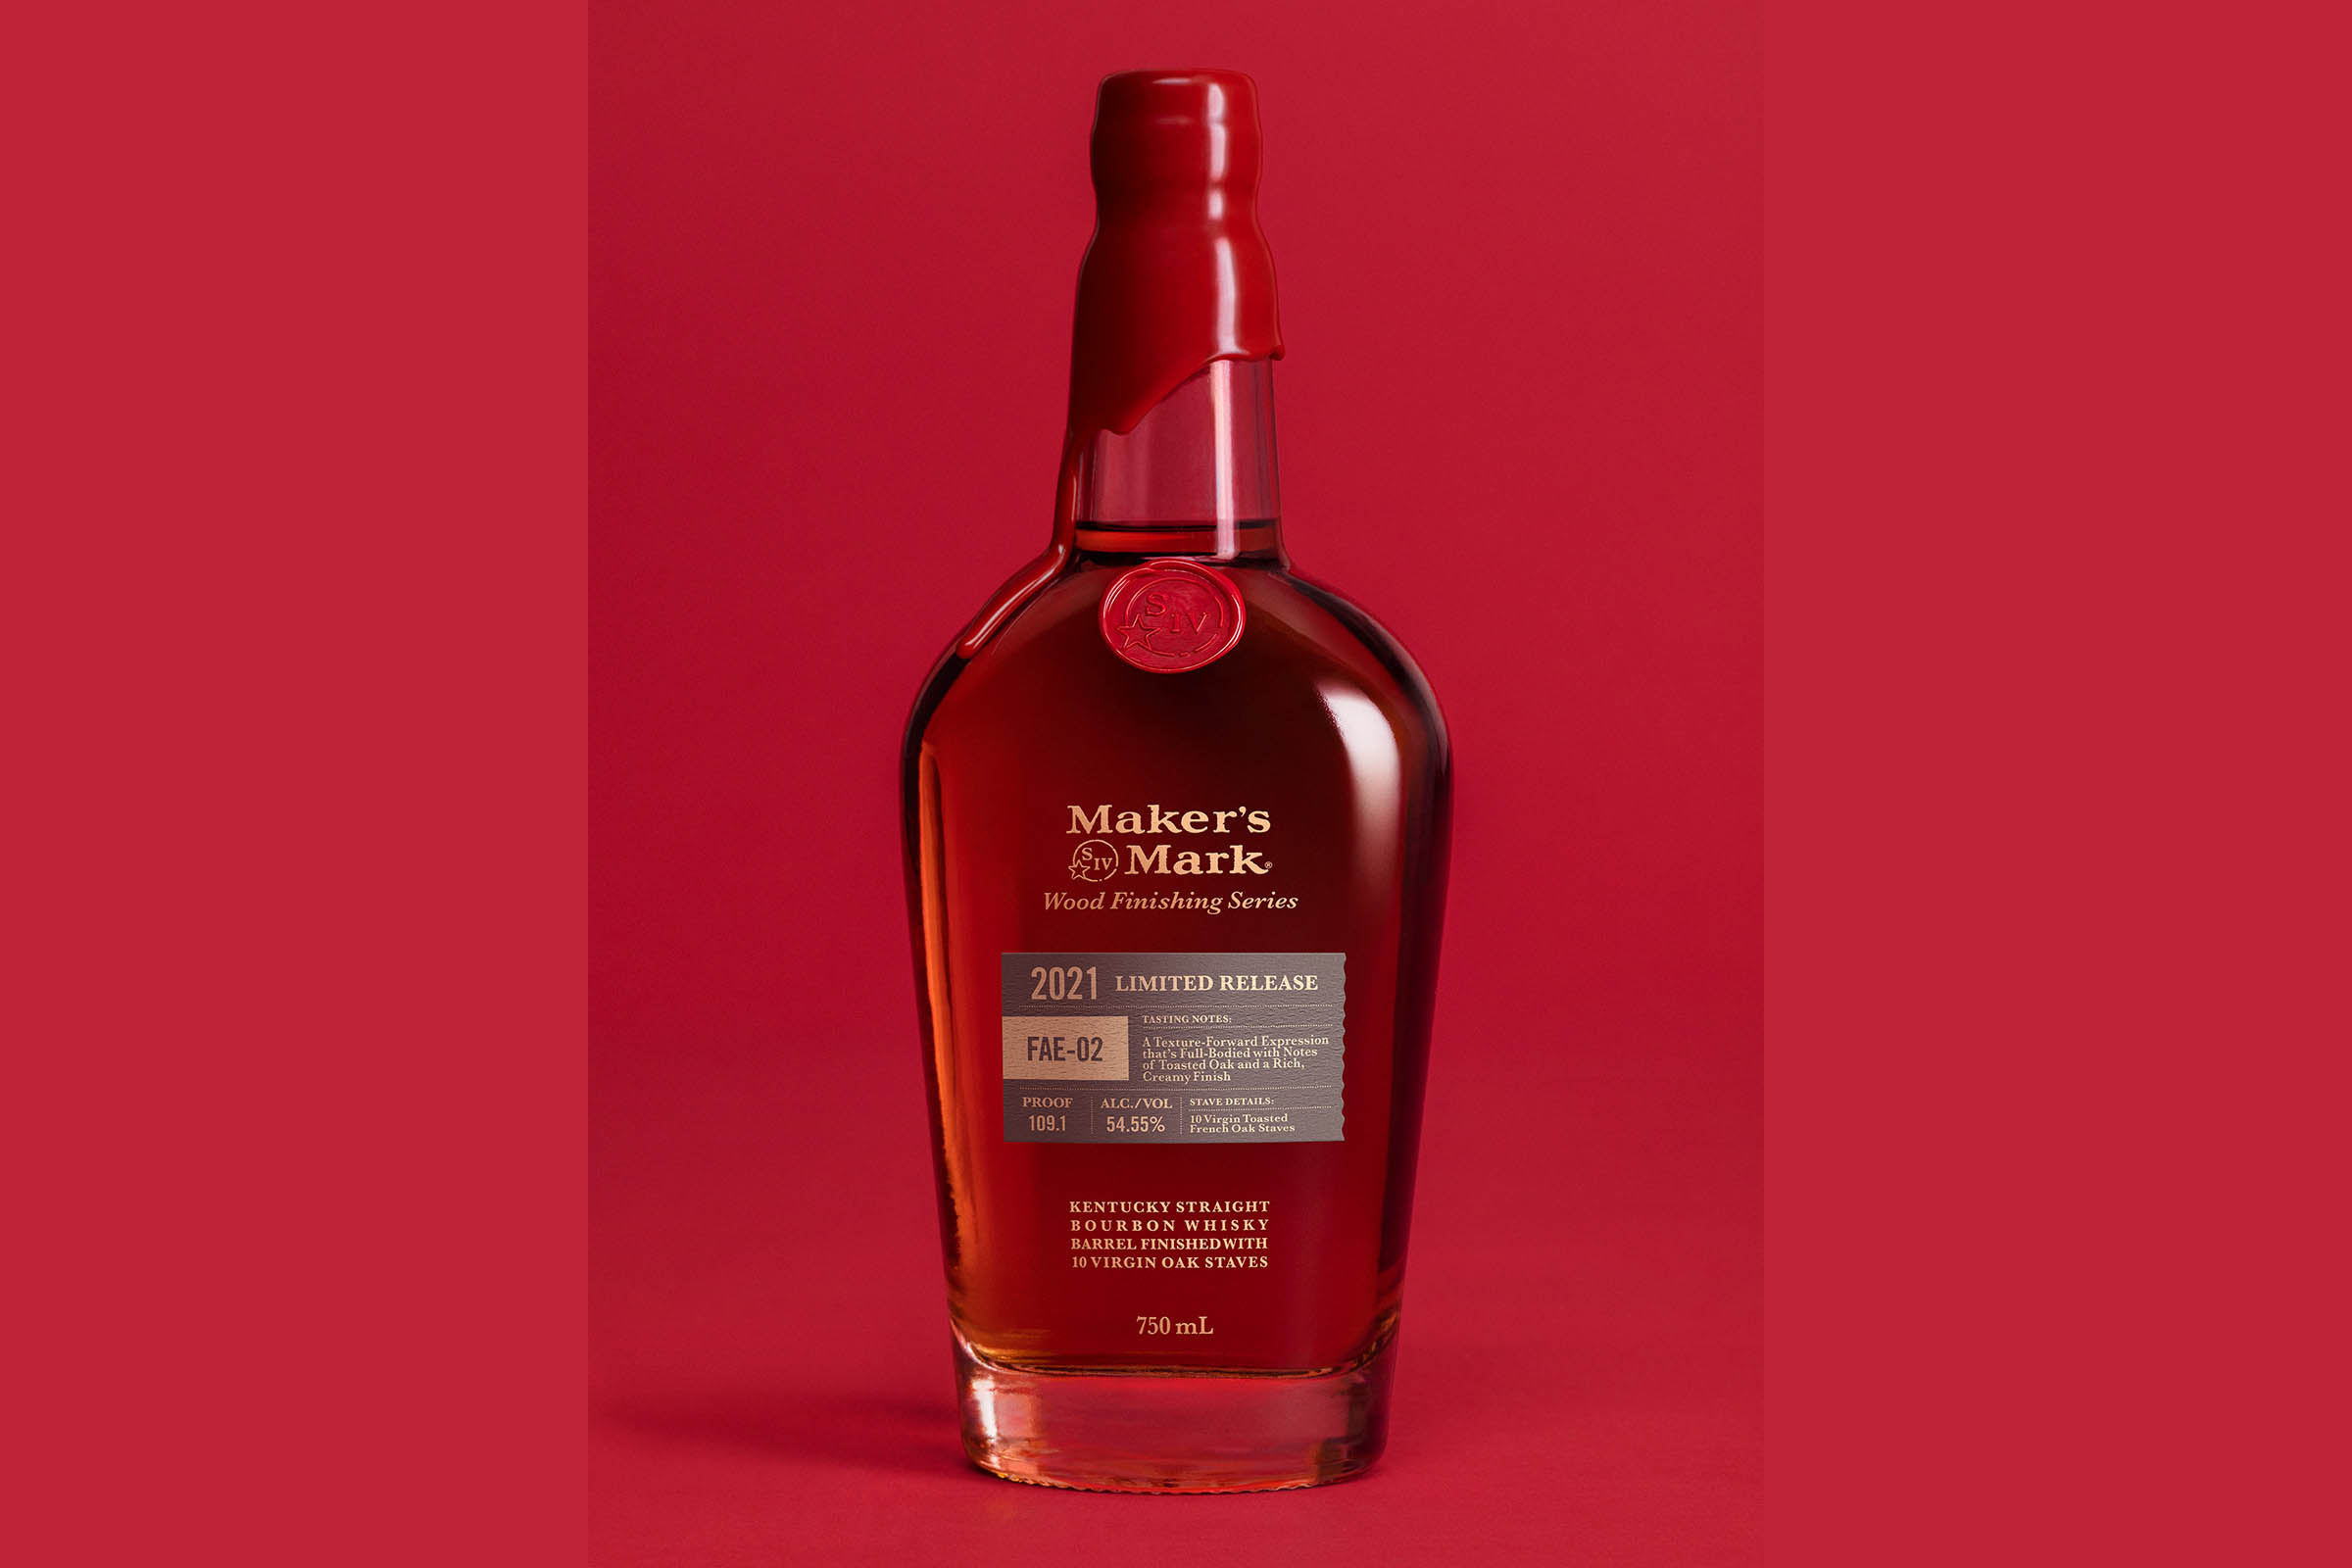 Maker's Mark Wood-Finishing Series 2021 Limited Release FAE-02